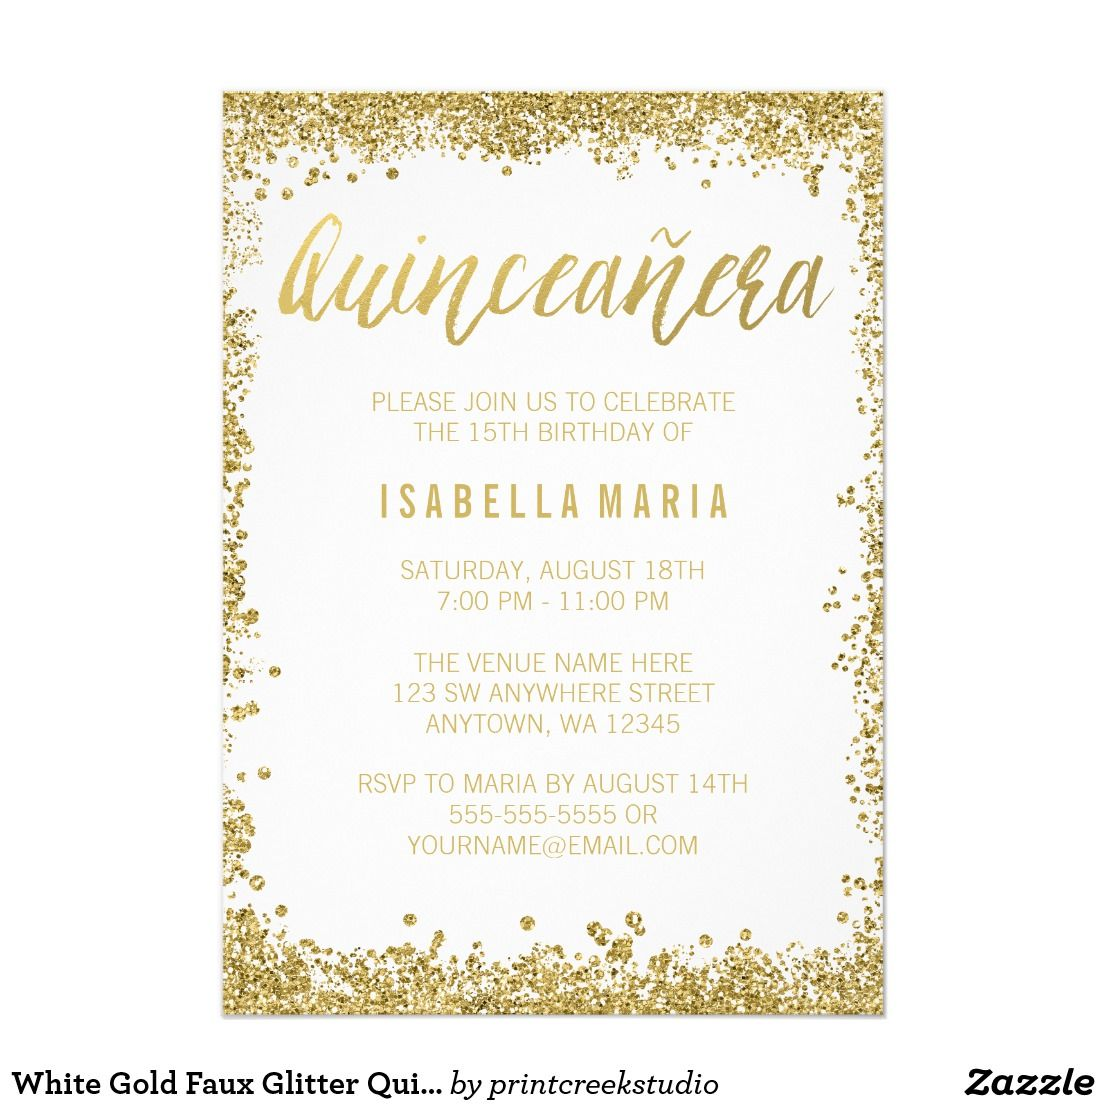 White Gold Faux Glitter Quinceanera 15th Birthday Card | Quinceanera ...